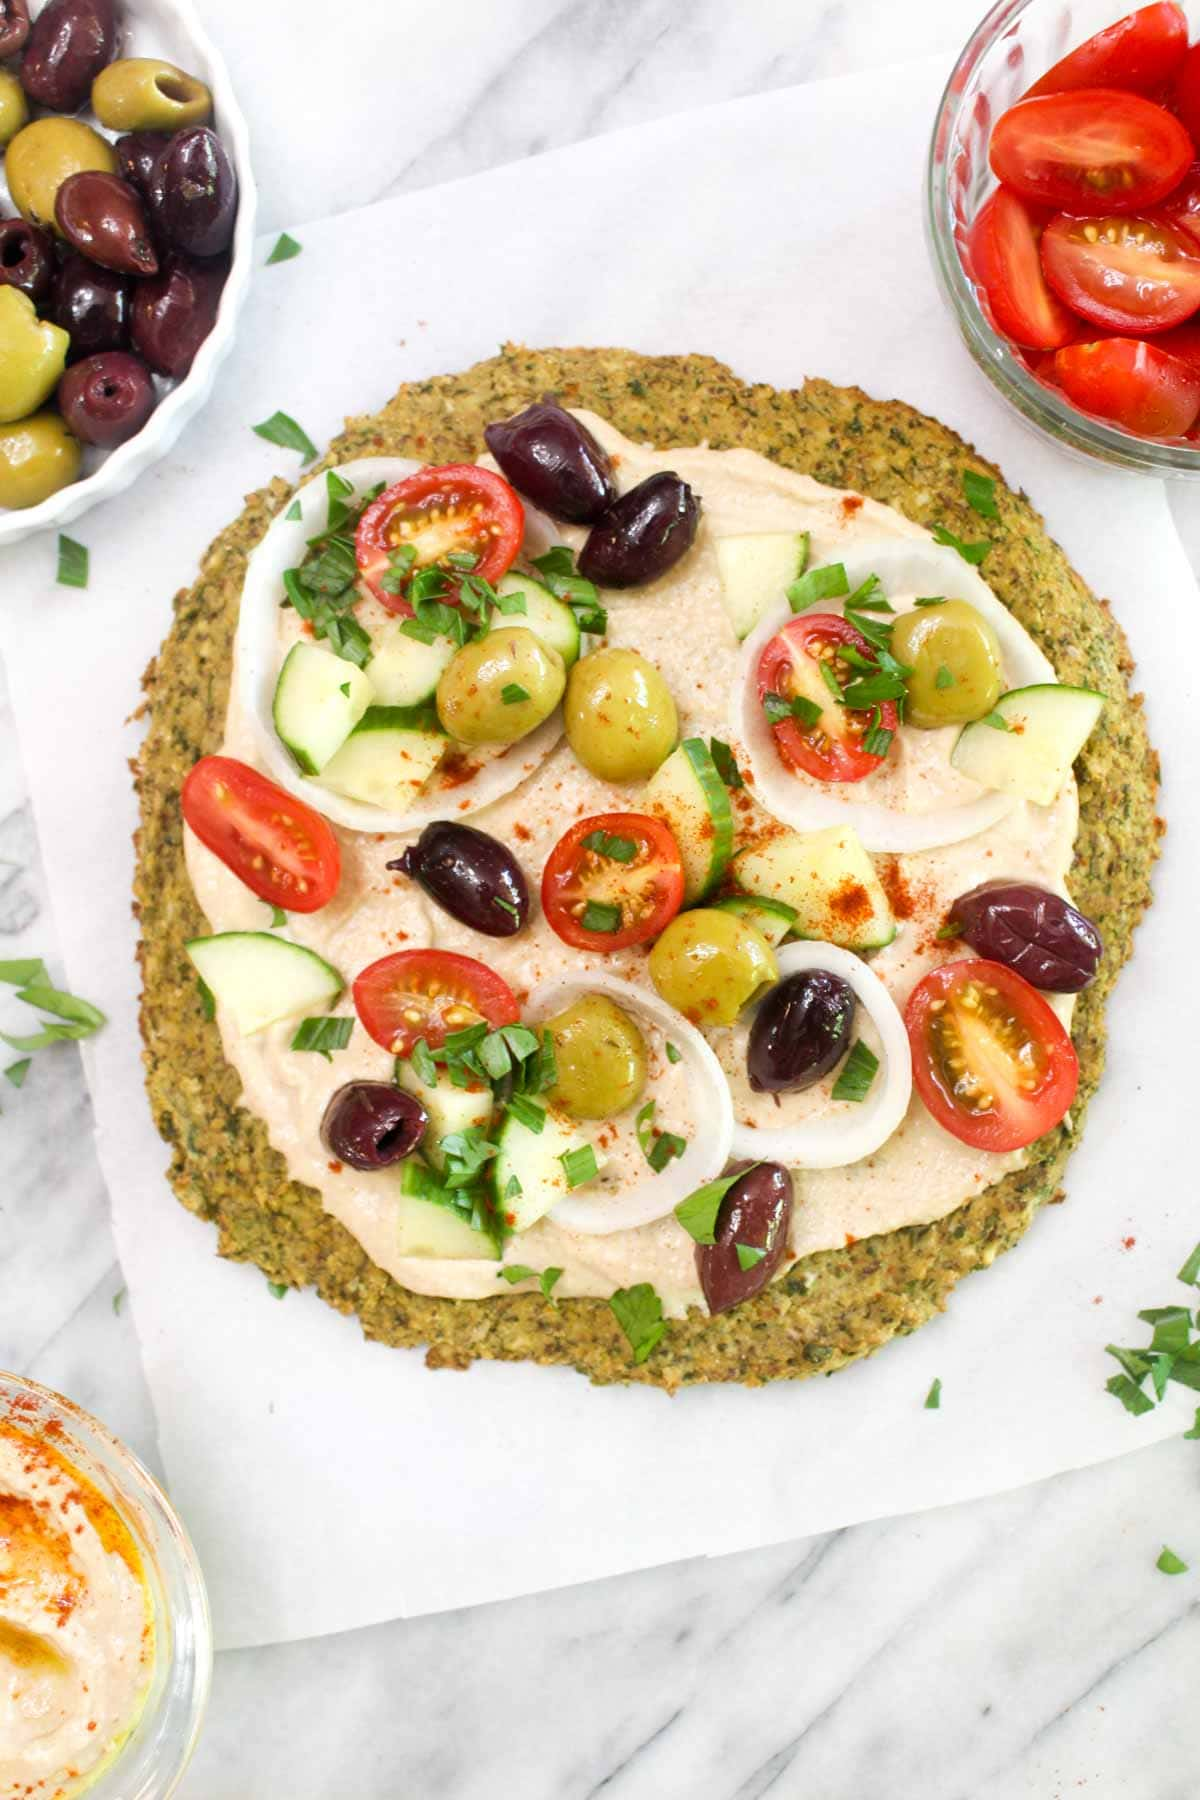 A falafel crust topped with hummus, olives, onion, tomatoes, and parsley.